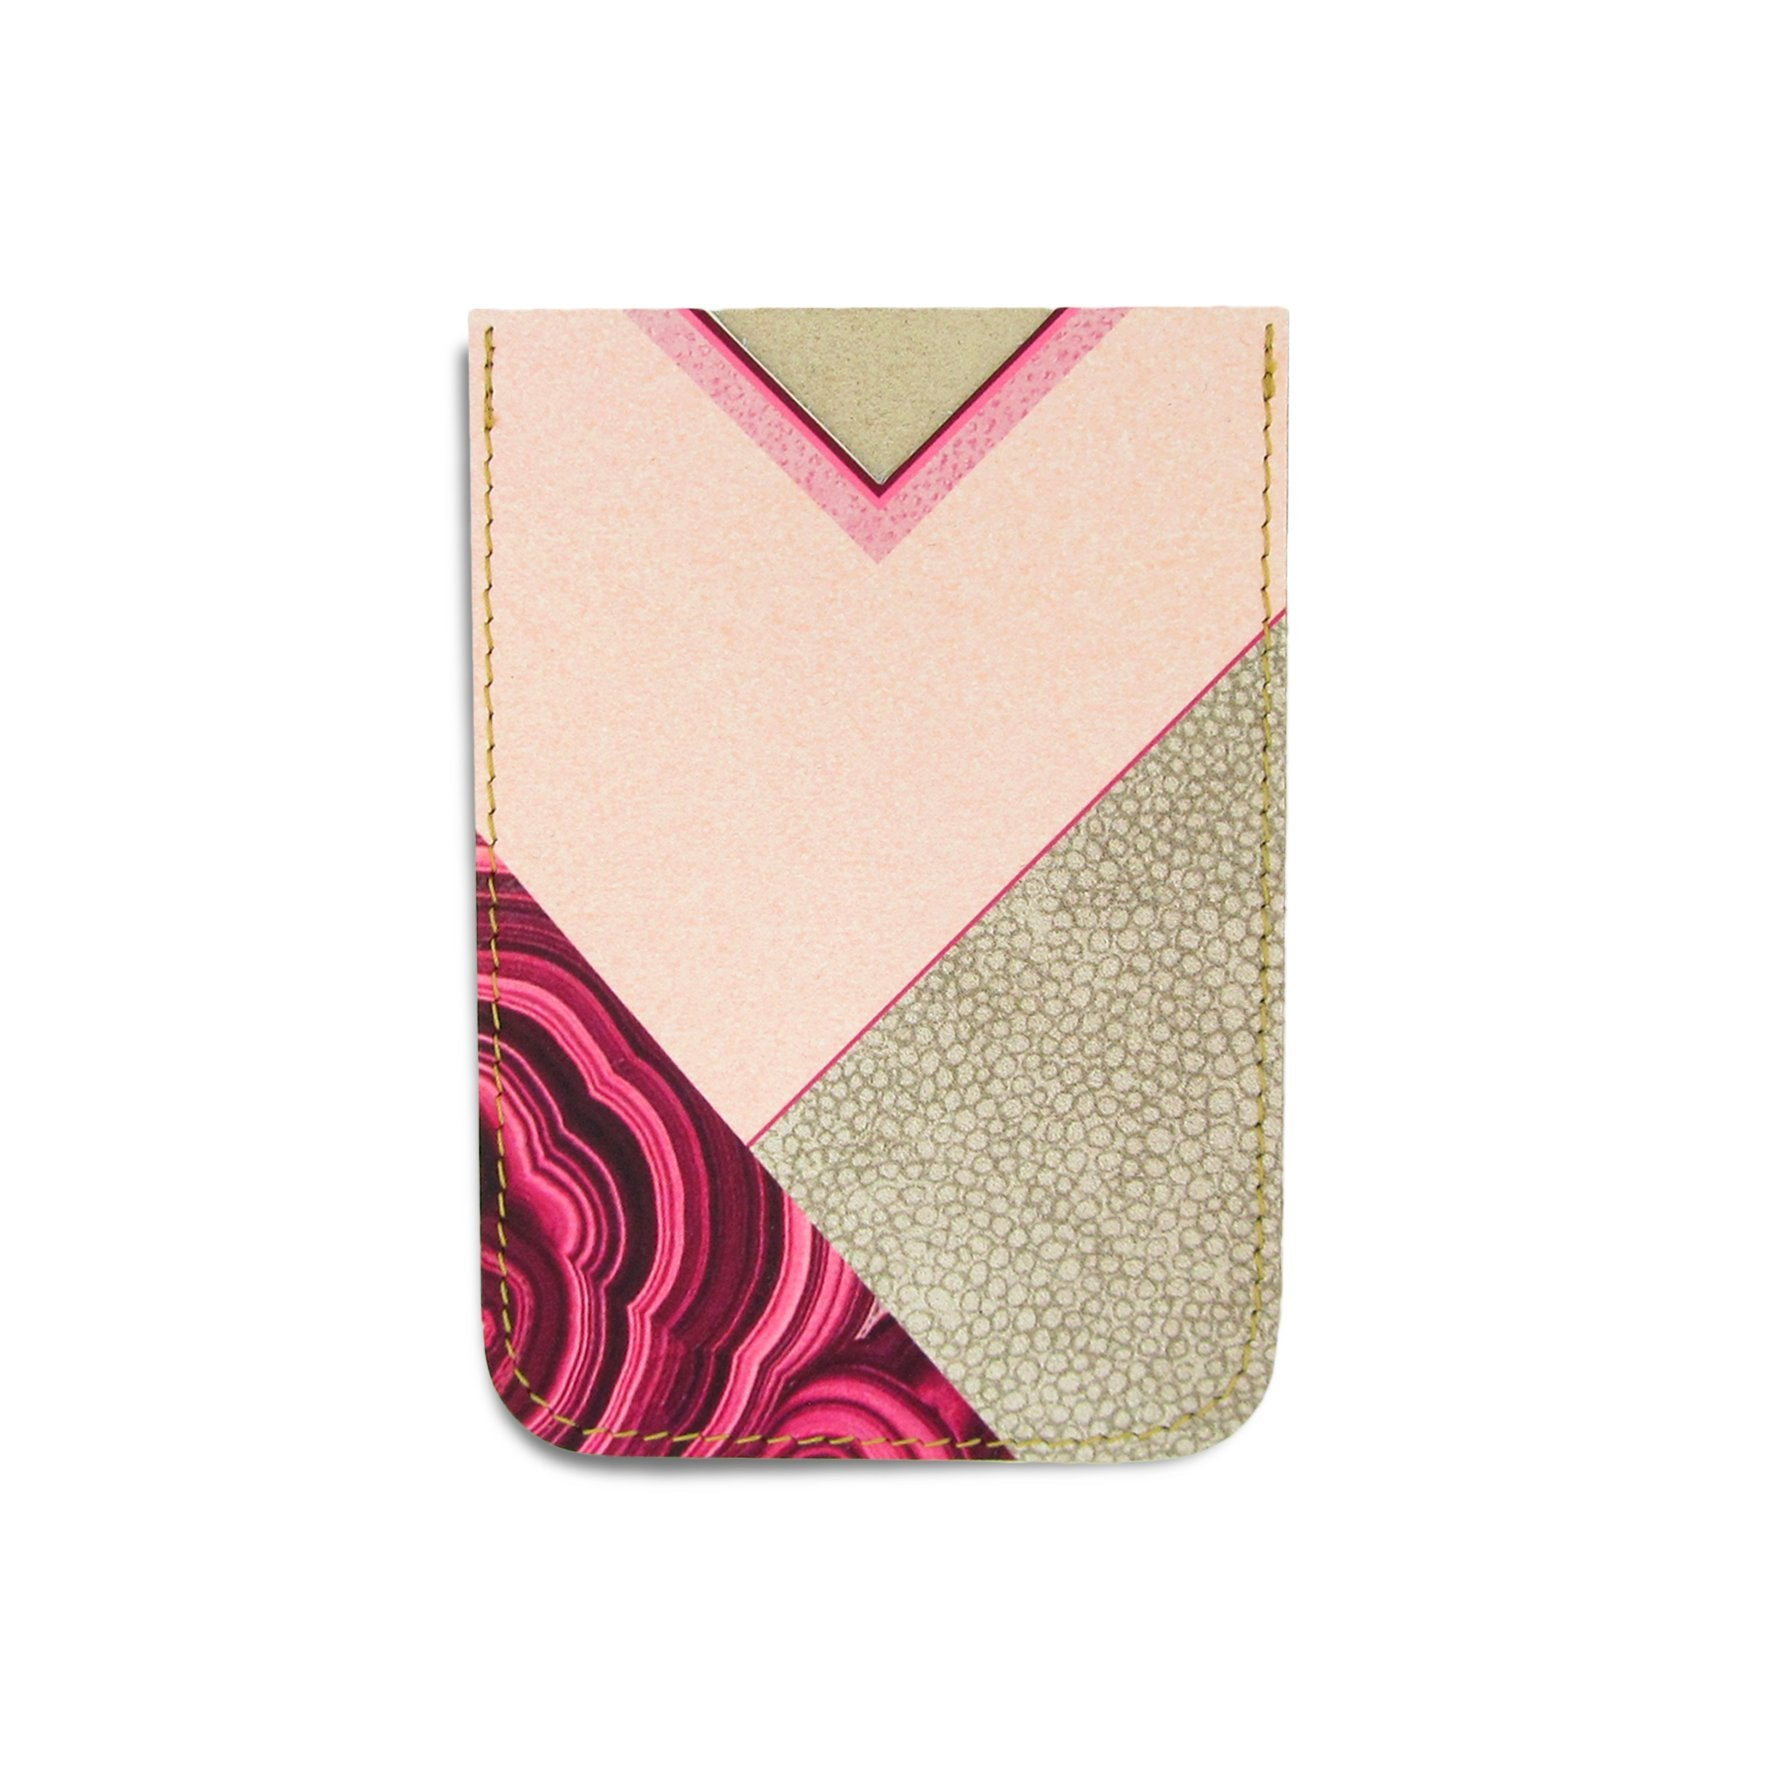 Leather Card Holder / Phone Sticker Wallet Pocket - Geometric Agate Wallet Tovi Sorga Standard Card Holder Without personalisation Pink